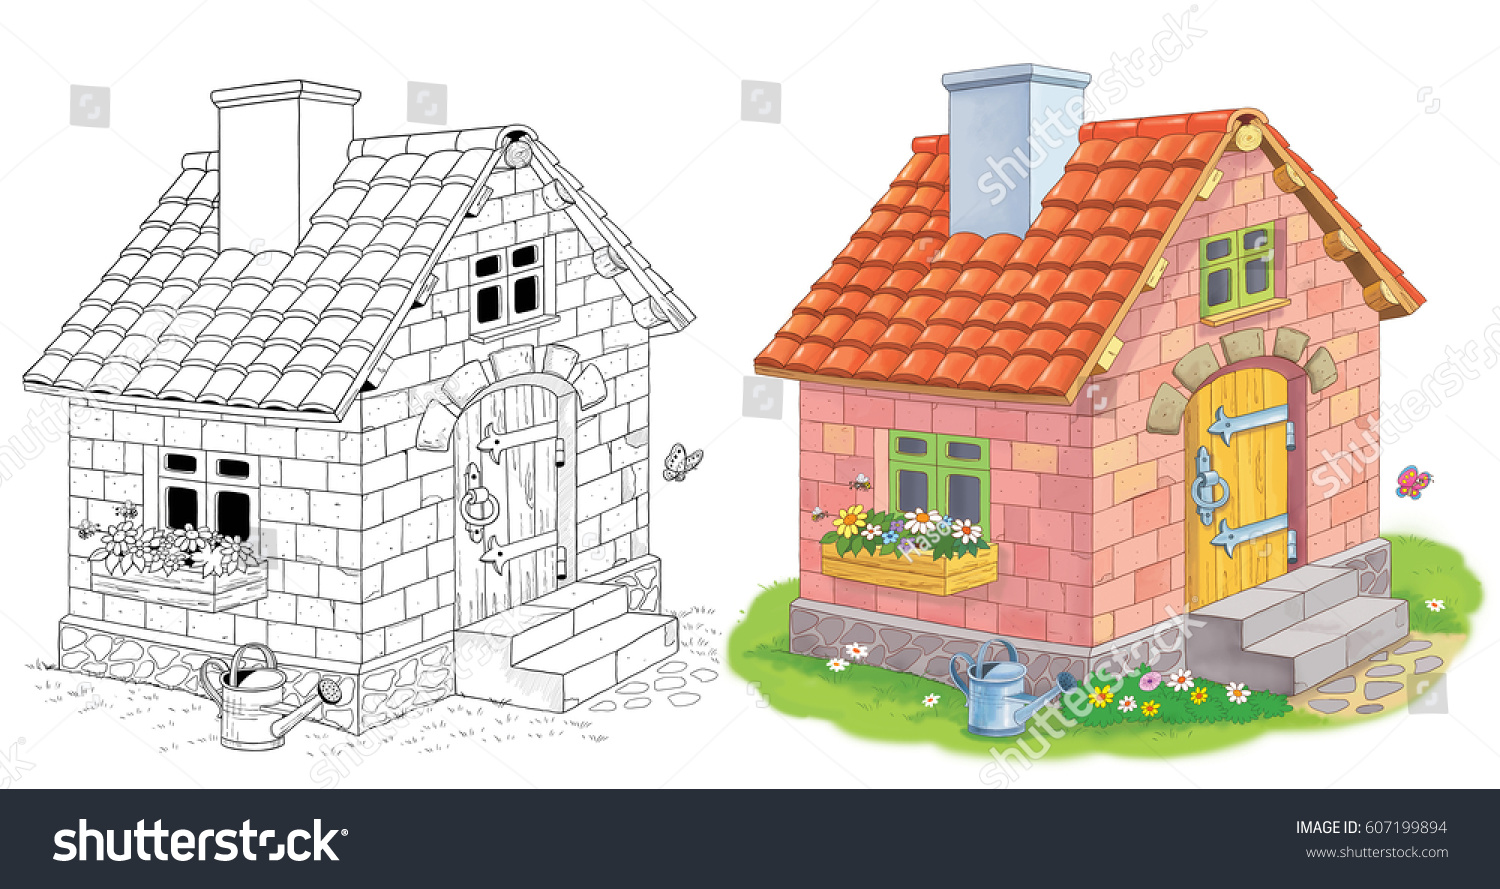 A Cute House Made Of Bricks Three Little Pigs Fairy Tale Coloring Book